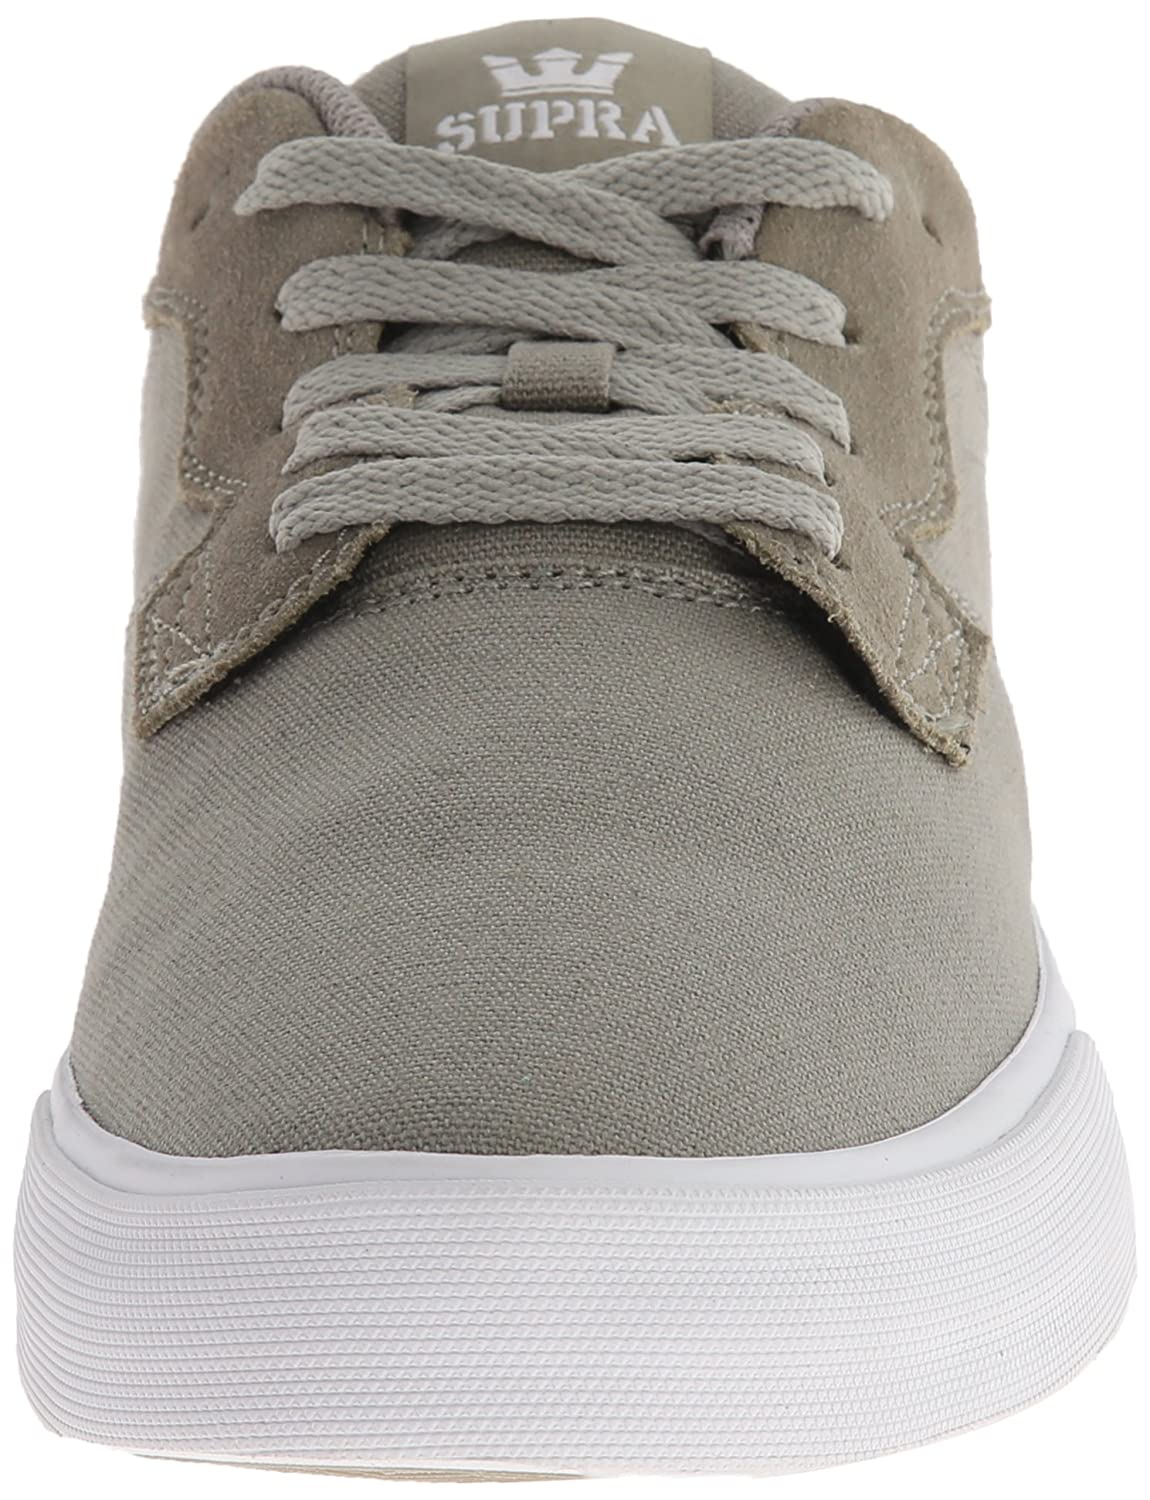 premium selection f2354 62257 Supra Axle Sneaker Dusty Olive Suede  Canvas